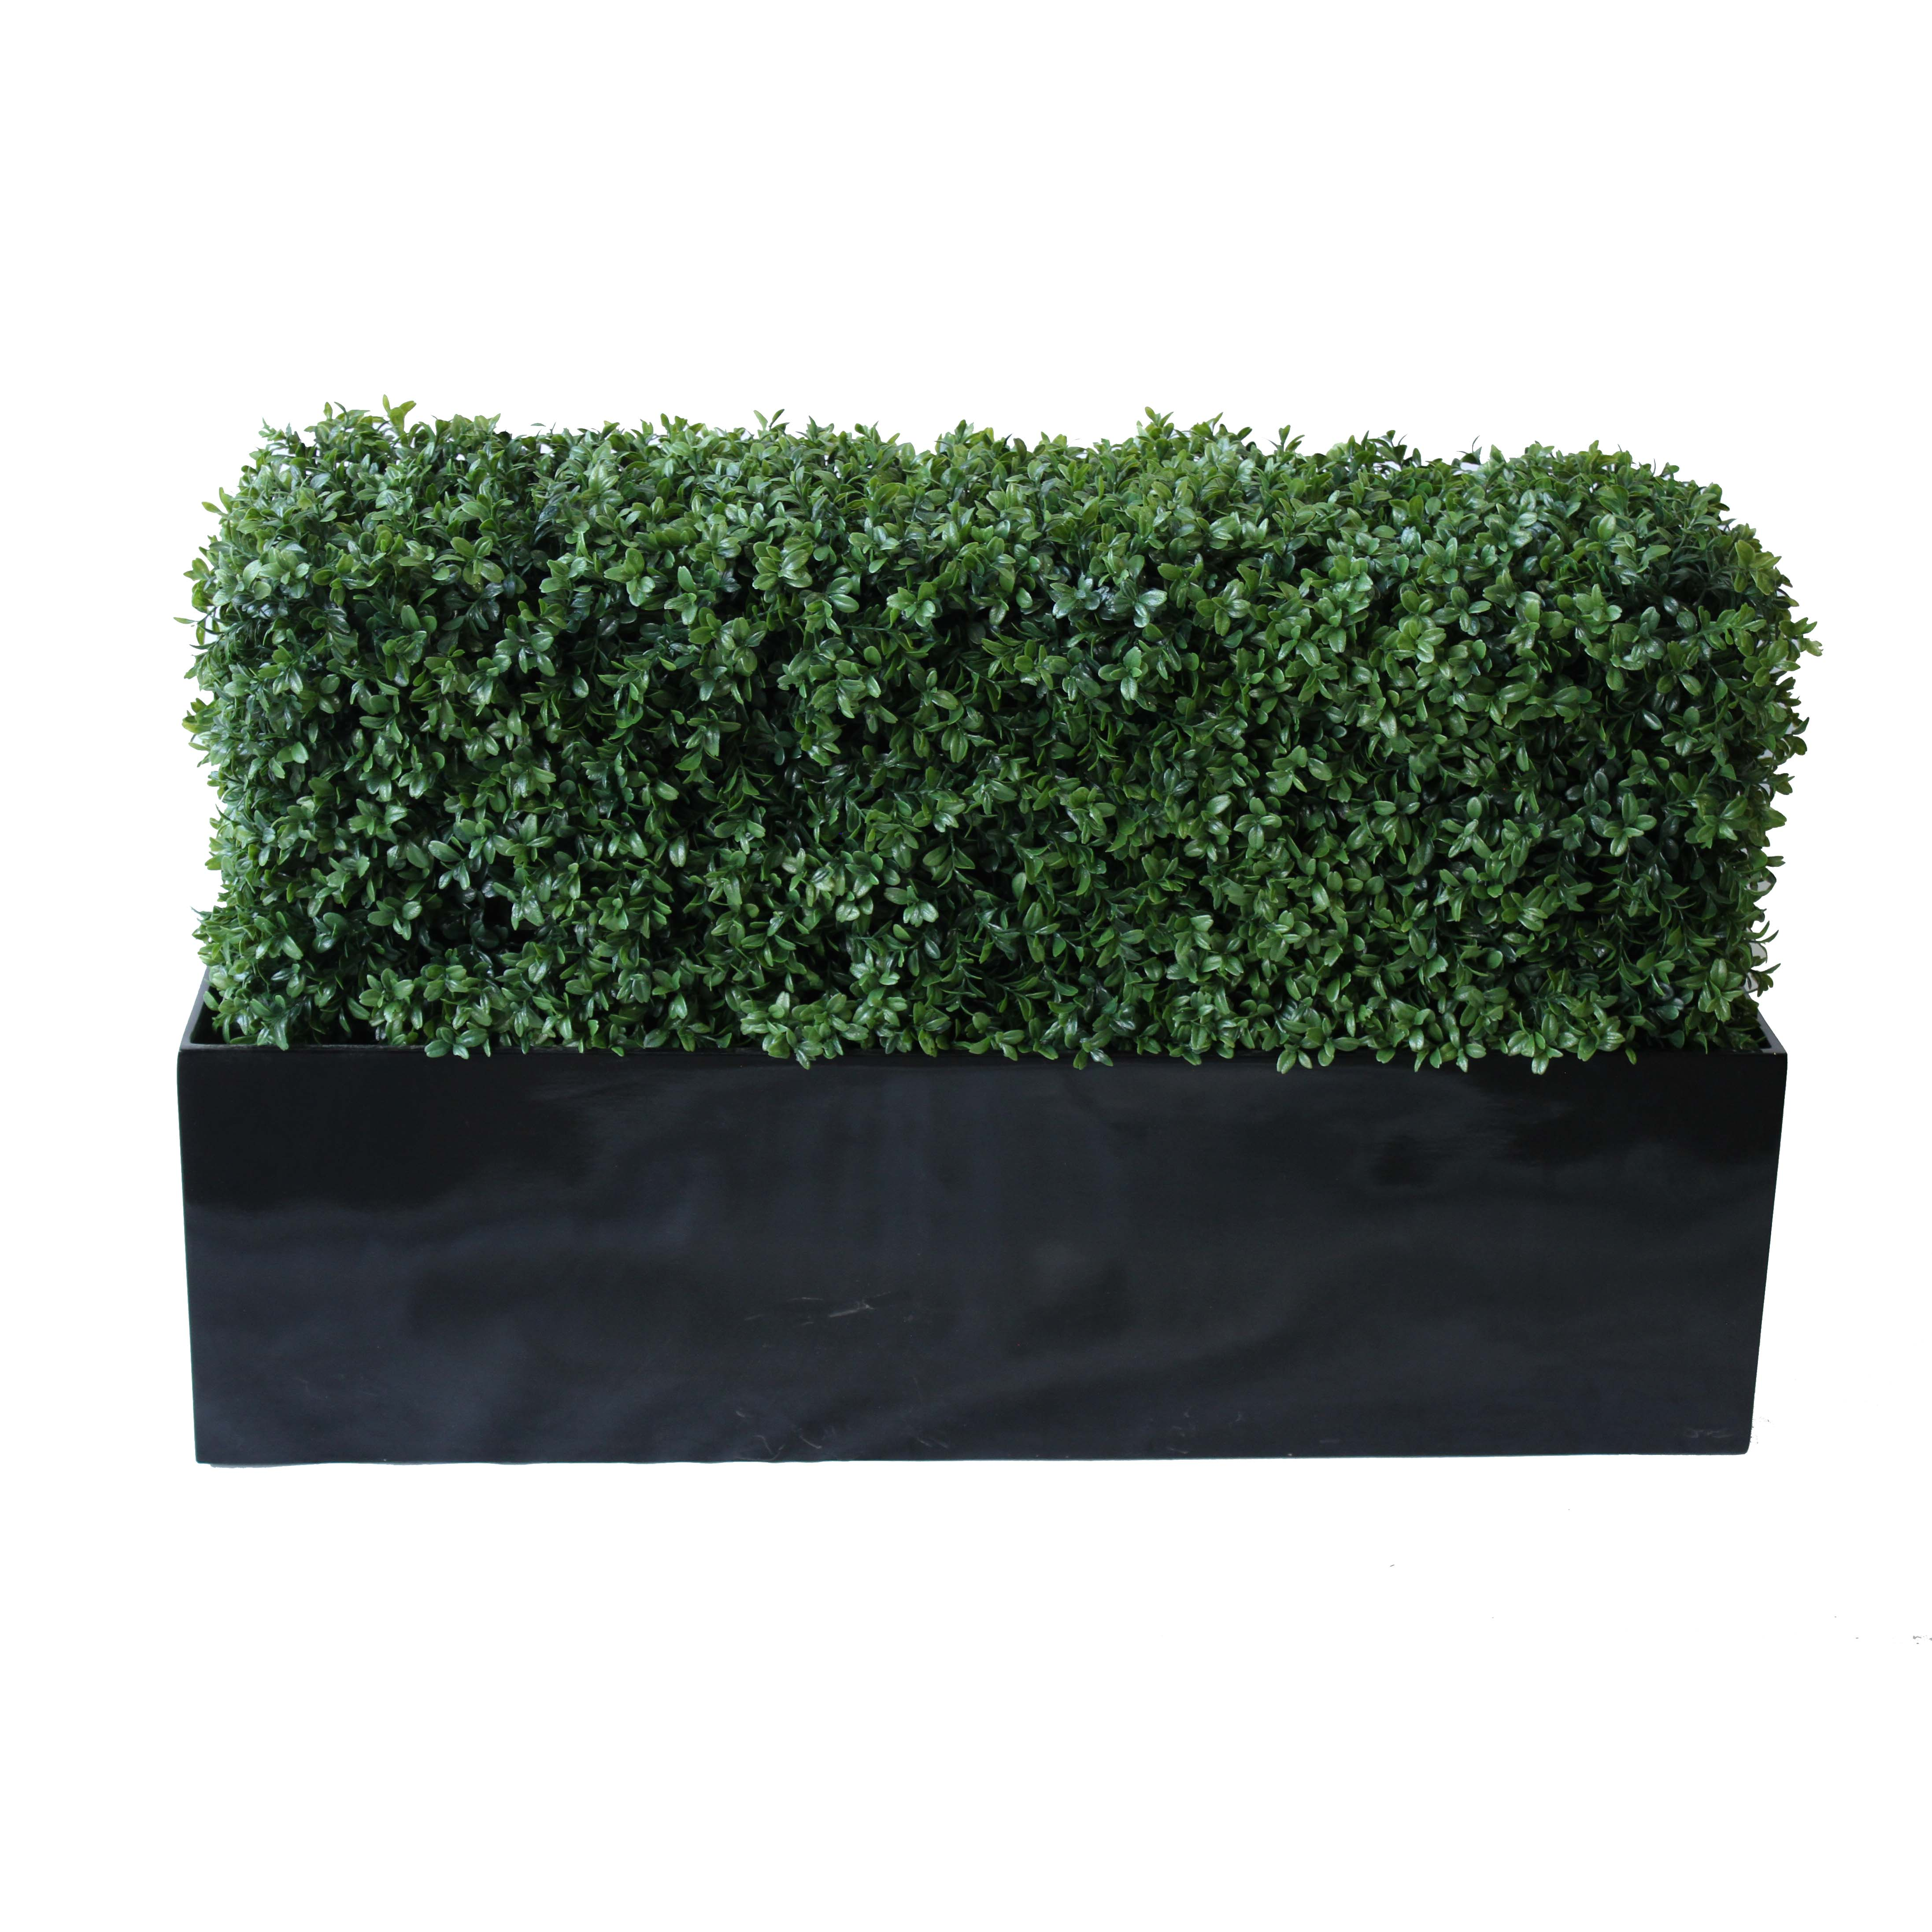 PREMIUM DELUXE BOXWOOD HEDGE 120 WIDE X 95CM TALL WITH FIBREGLASS TROUGH